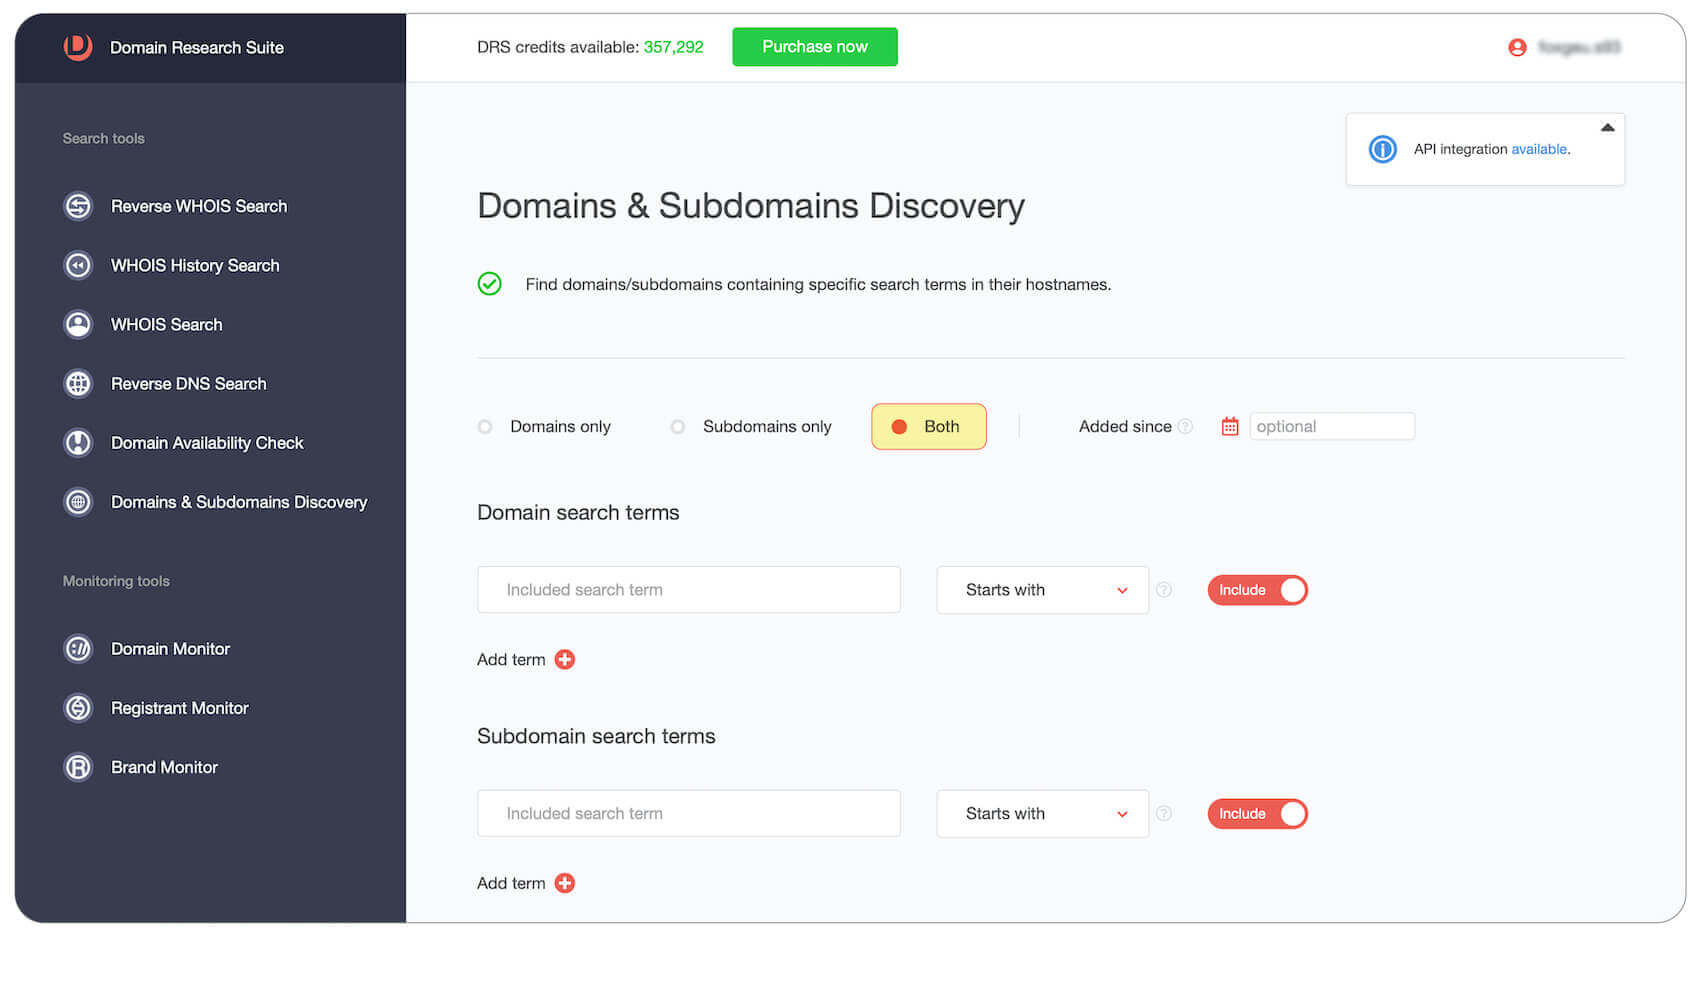 Both domains and subdomains example